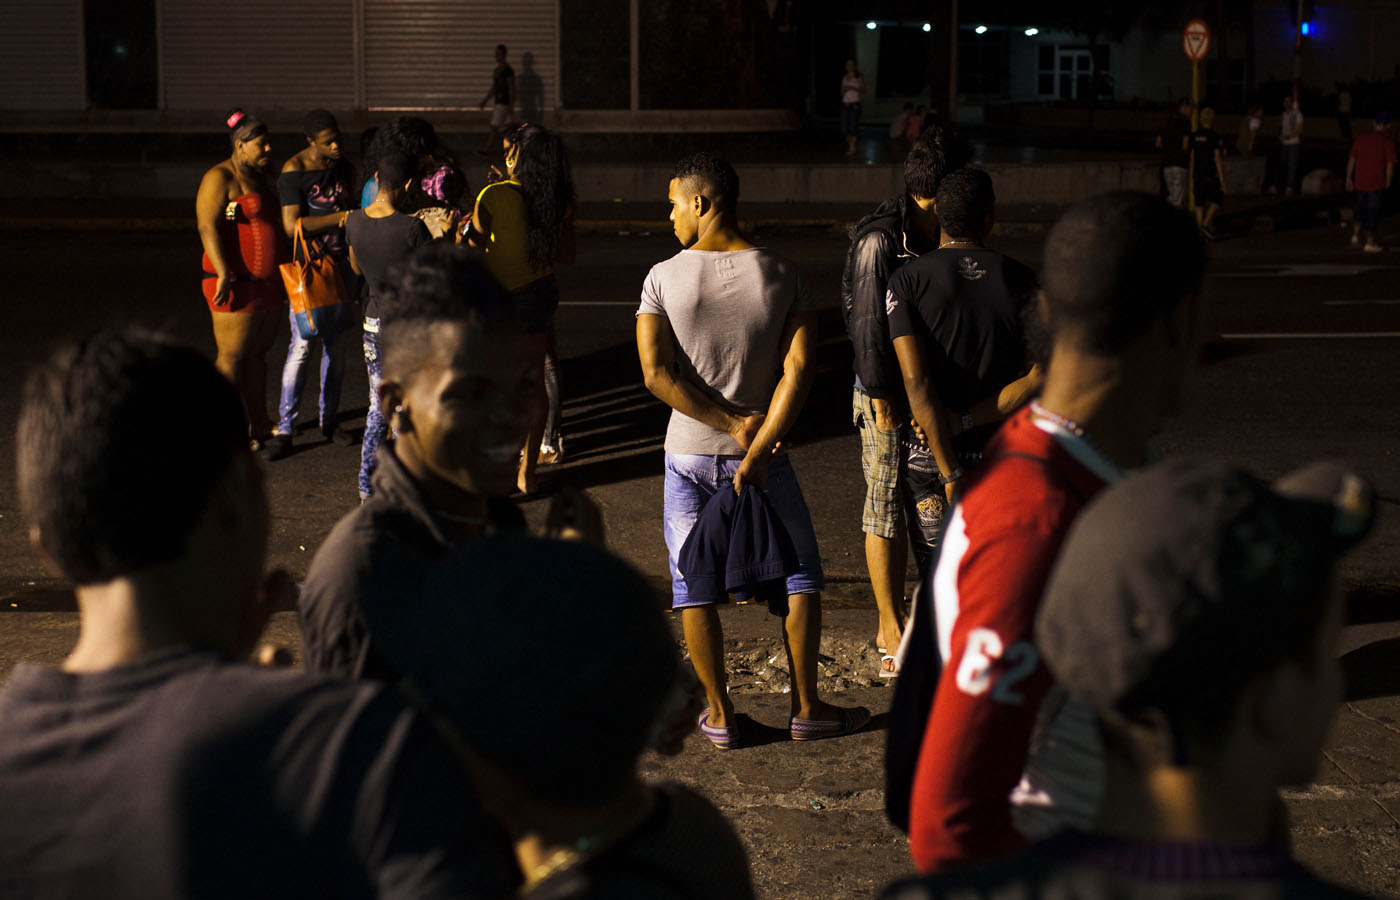 Men, women and transgender people gather at the corner of Infanta and Calle 23 in Havana. This corner is a popular location for the LGBT community on any night of the week. Public gatherings of LGBT people were rare until roughly five years ago because of police and community discrimination.